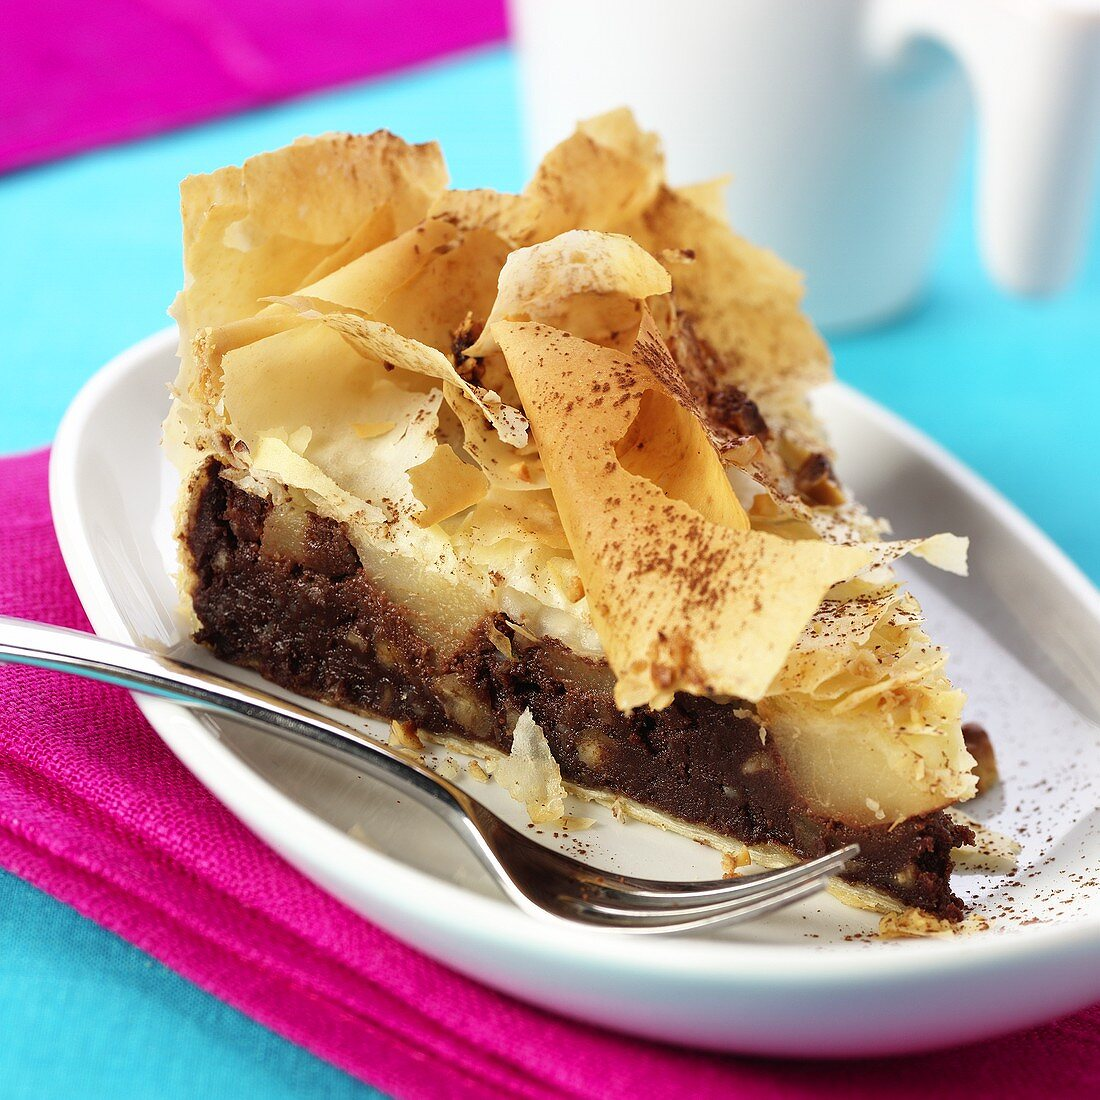 Piece of chocolate pear cake with strudel pastry